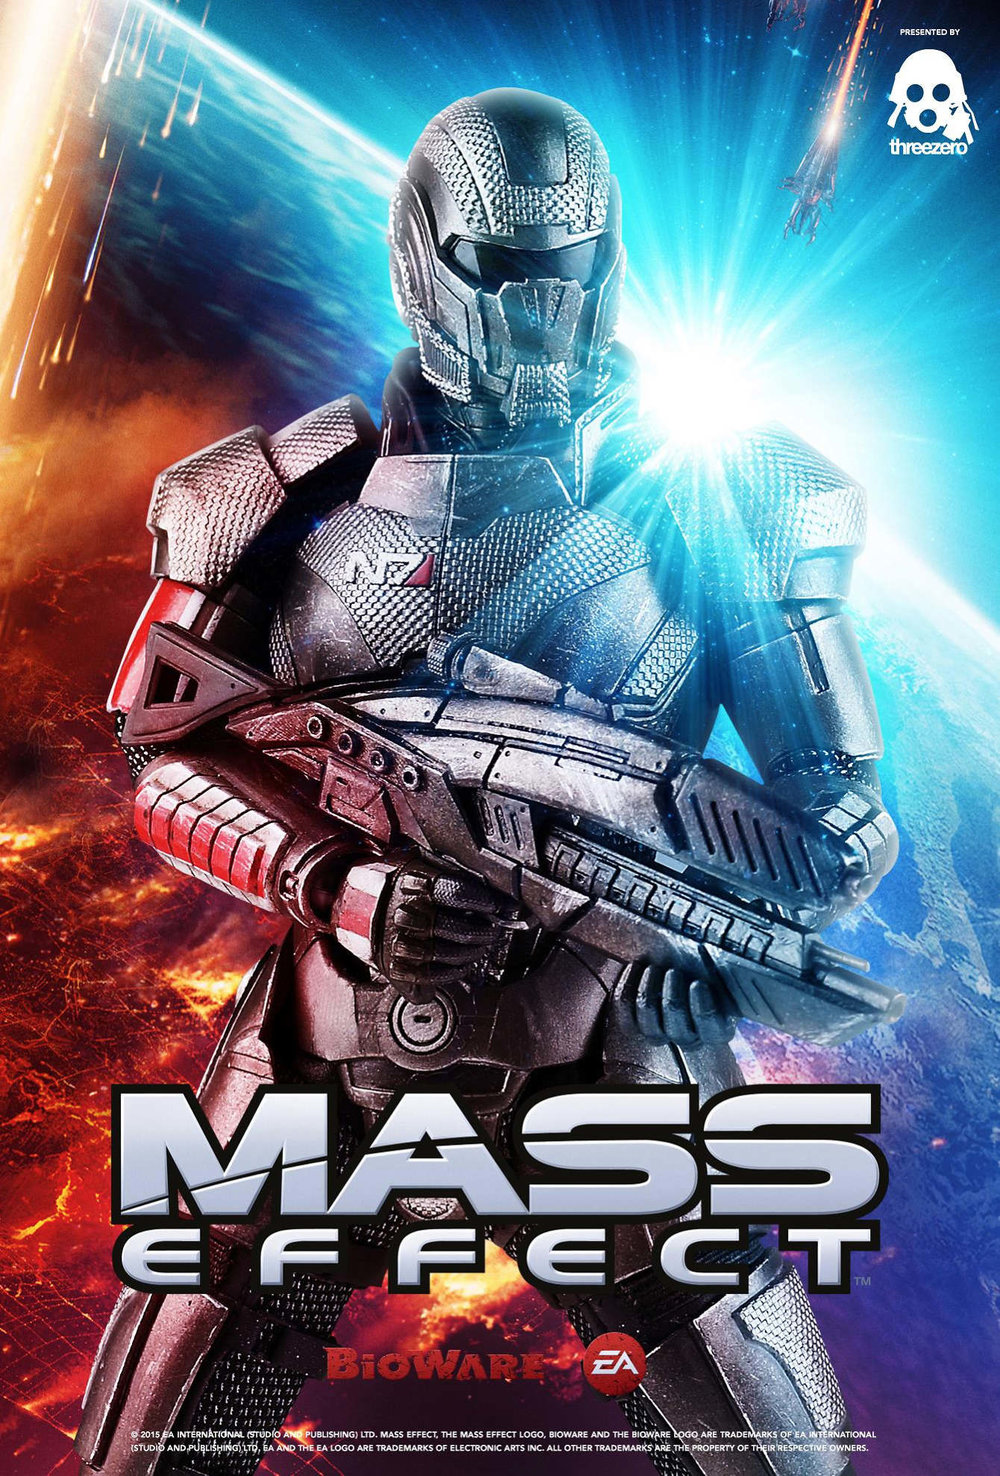 ThreeZero-Bioware-video-game-Shepard-MASSEFFECT-PROMO_1340_c.jpg